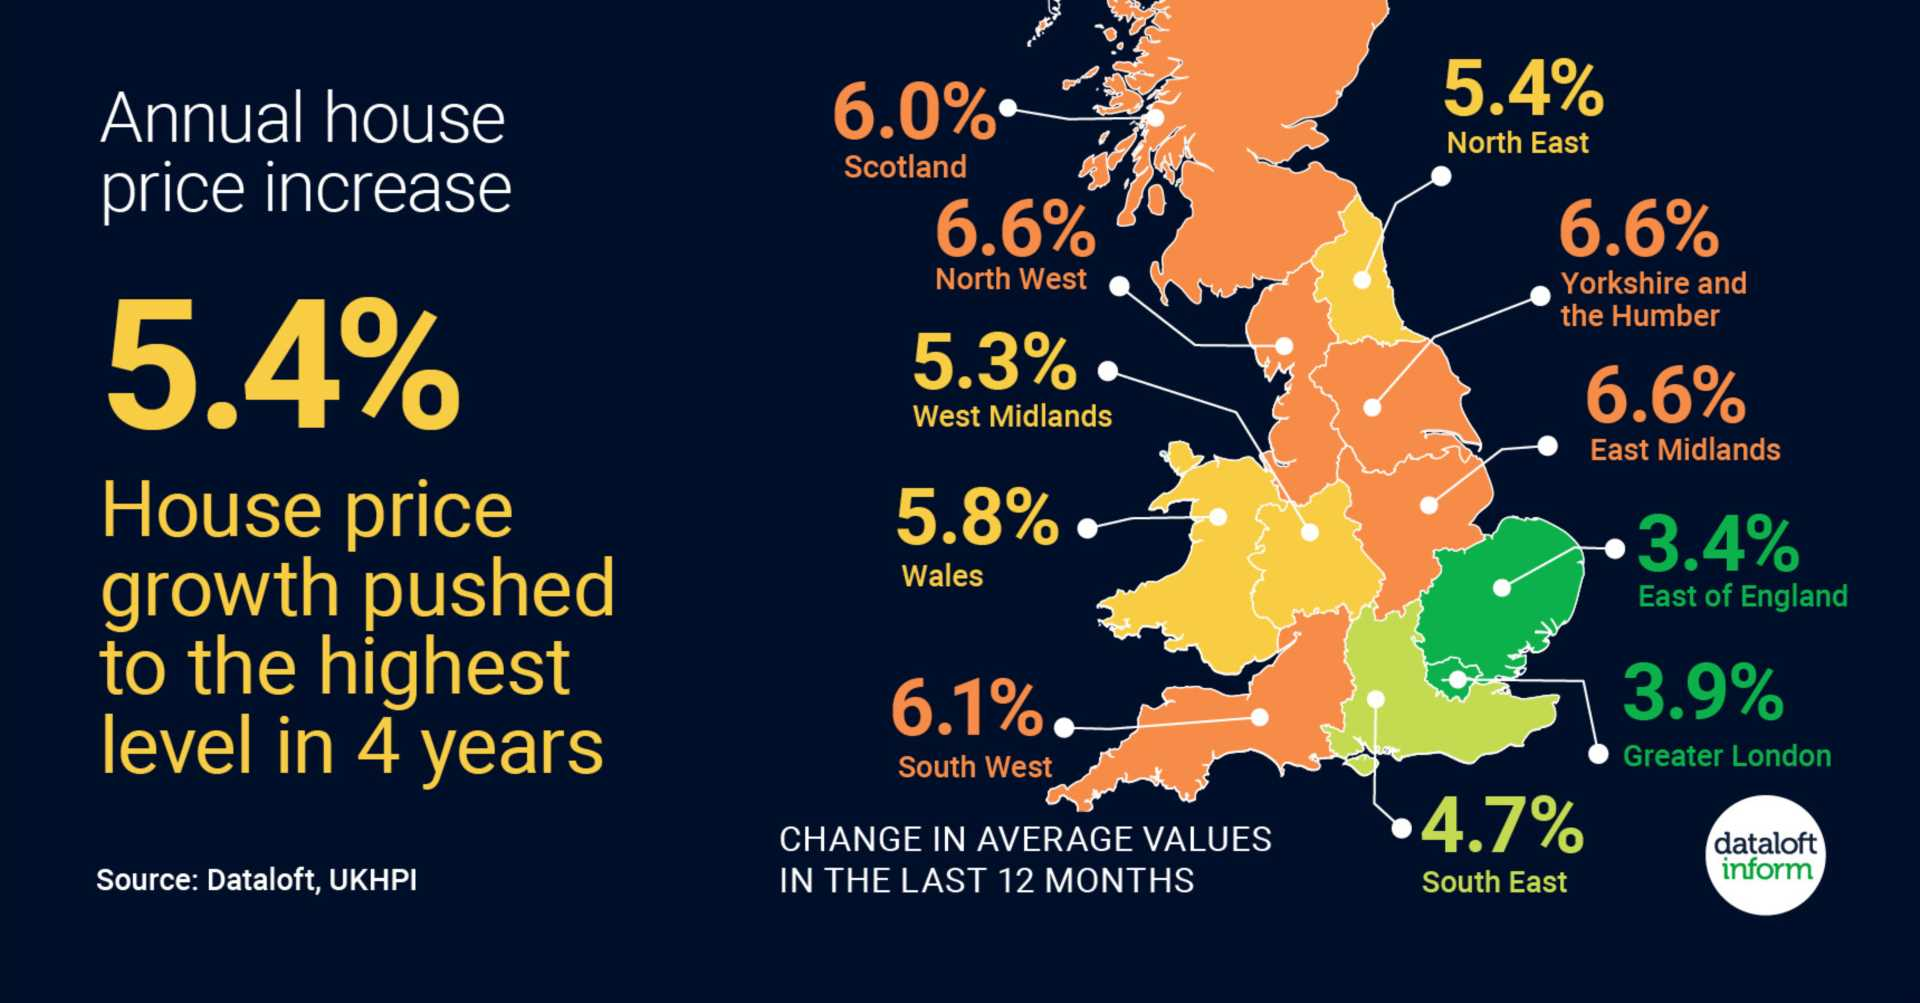 House price growth pushed to the highest level in 4 years